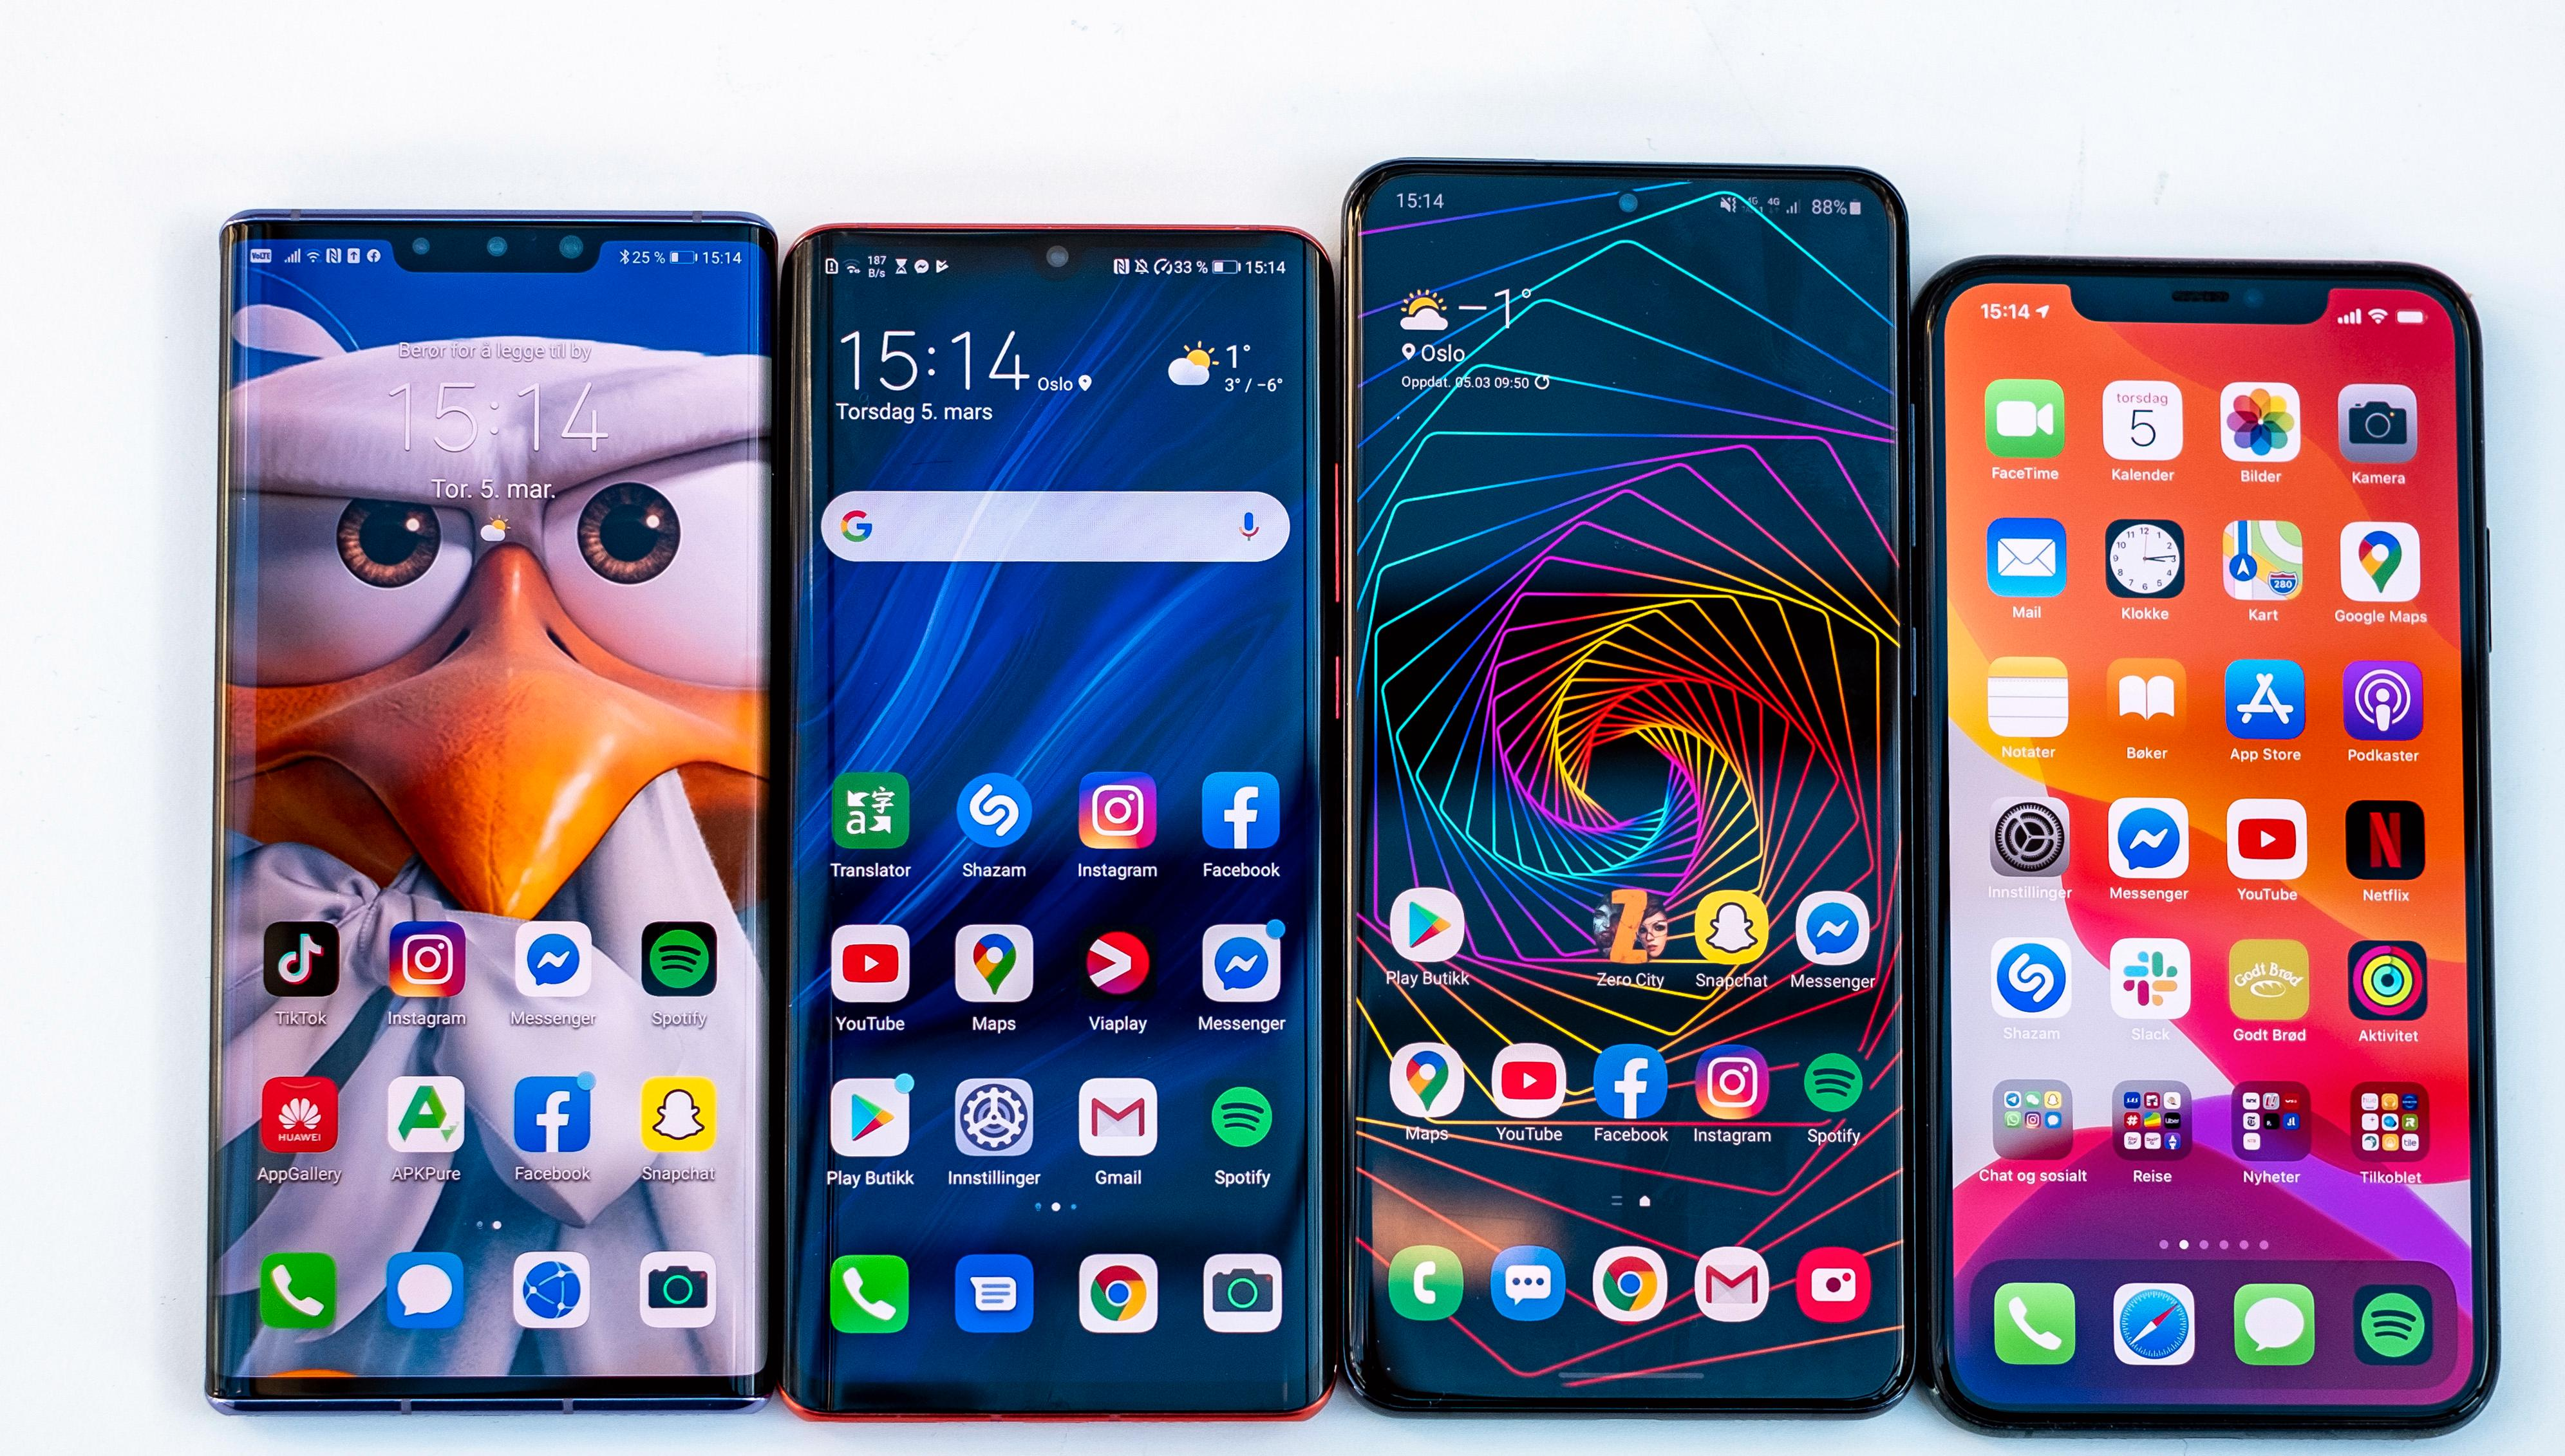 Fra venstre: Huawei Mate 30 Pro, Huawei P30 Pro, Samsung Galaxy S20 Ultra, Apple iPhone 11 Pro Max